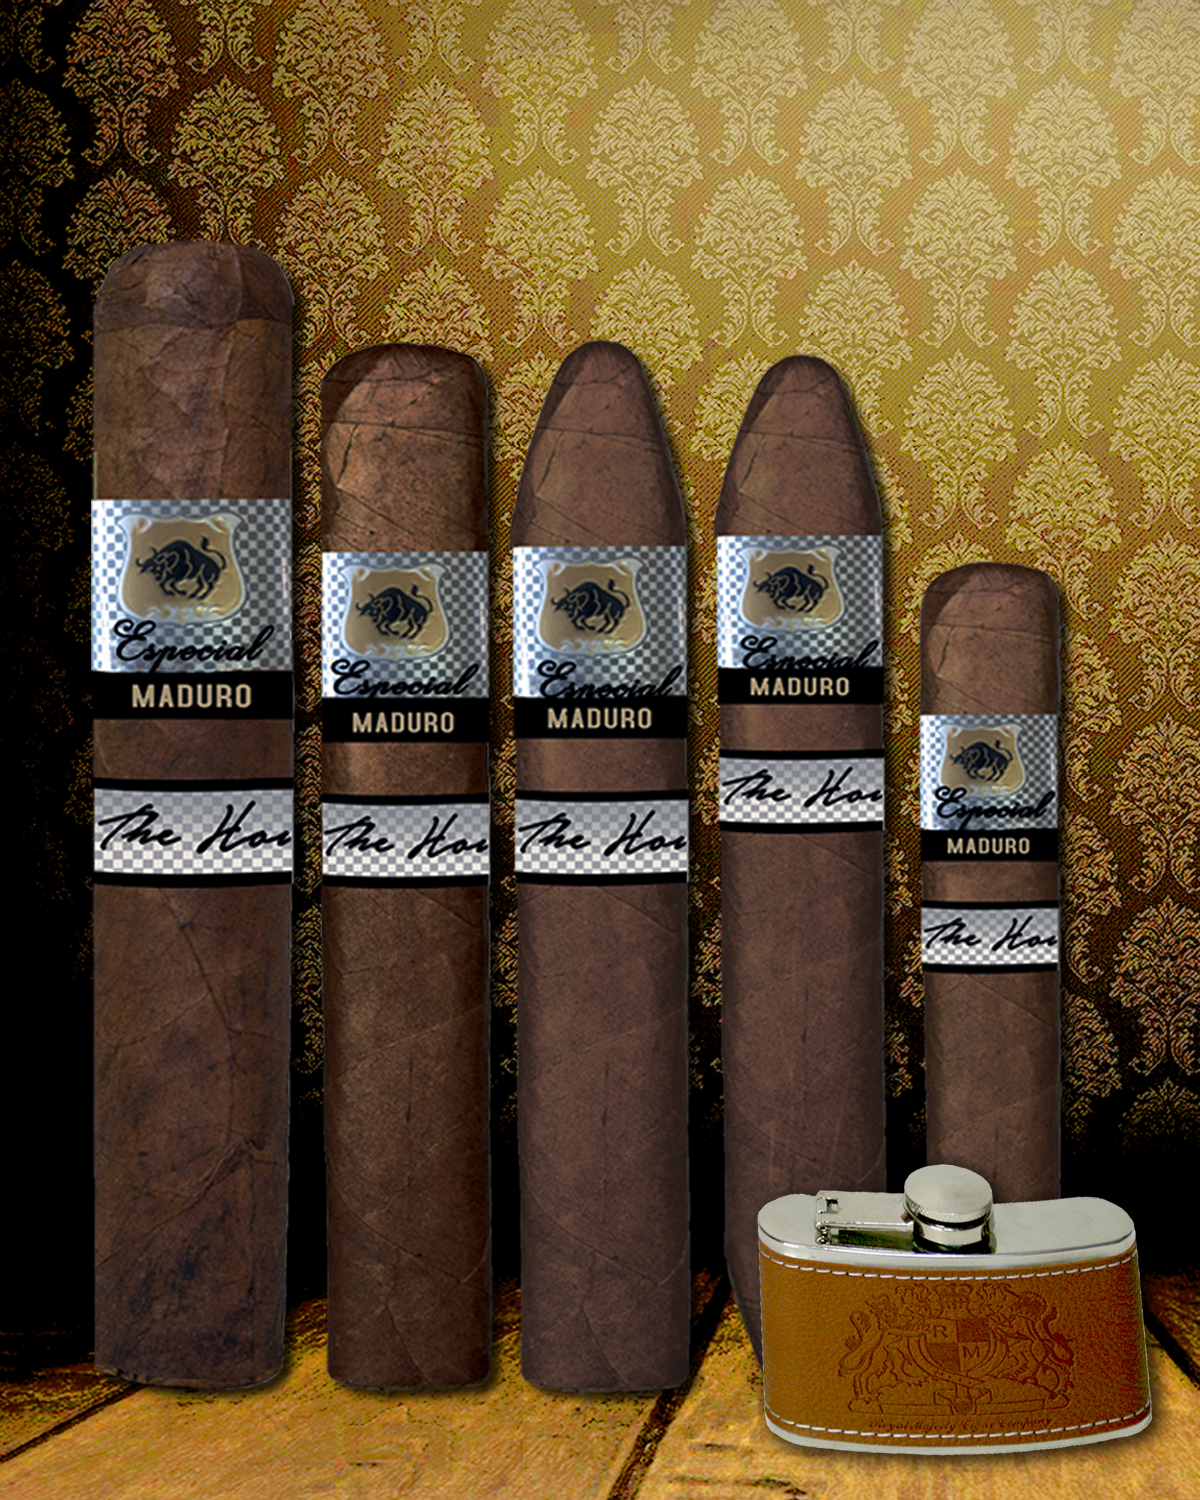 Holiday Especial Maduro 5 Piece Sampler + Free Gift Stainless Steel Flask